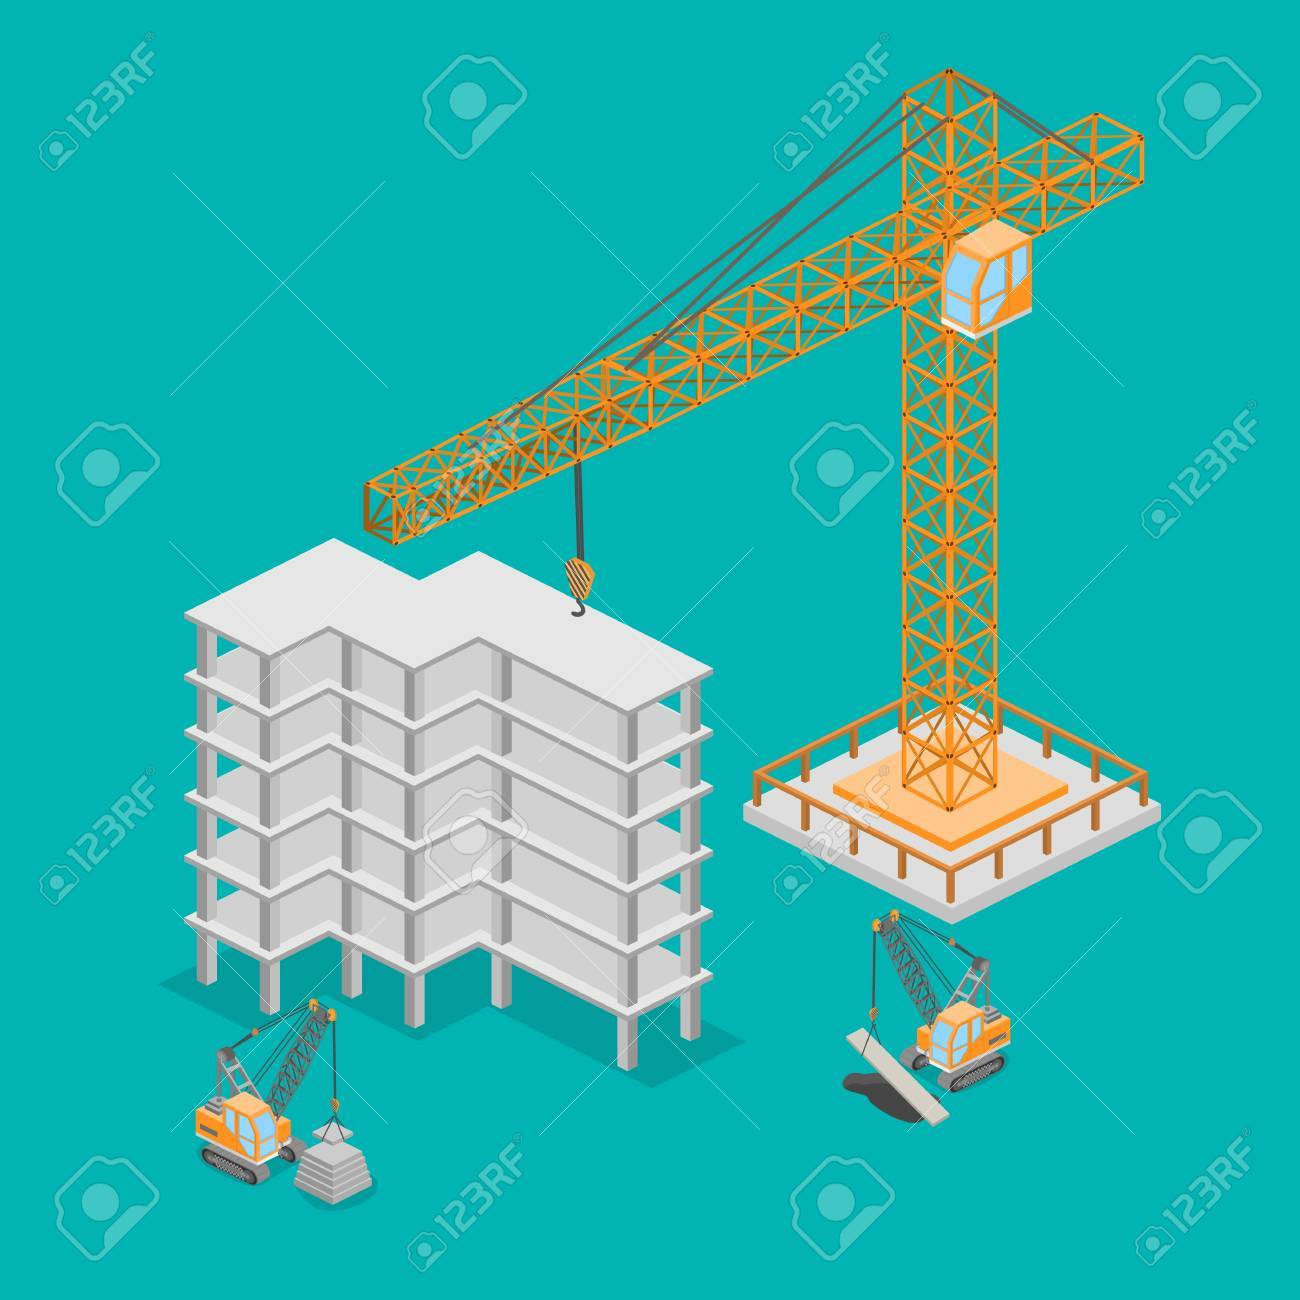 hight resolution of isometric 3d illustration truck crane construction construction of a multistory building stock vector